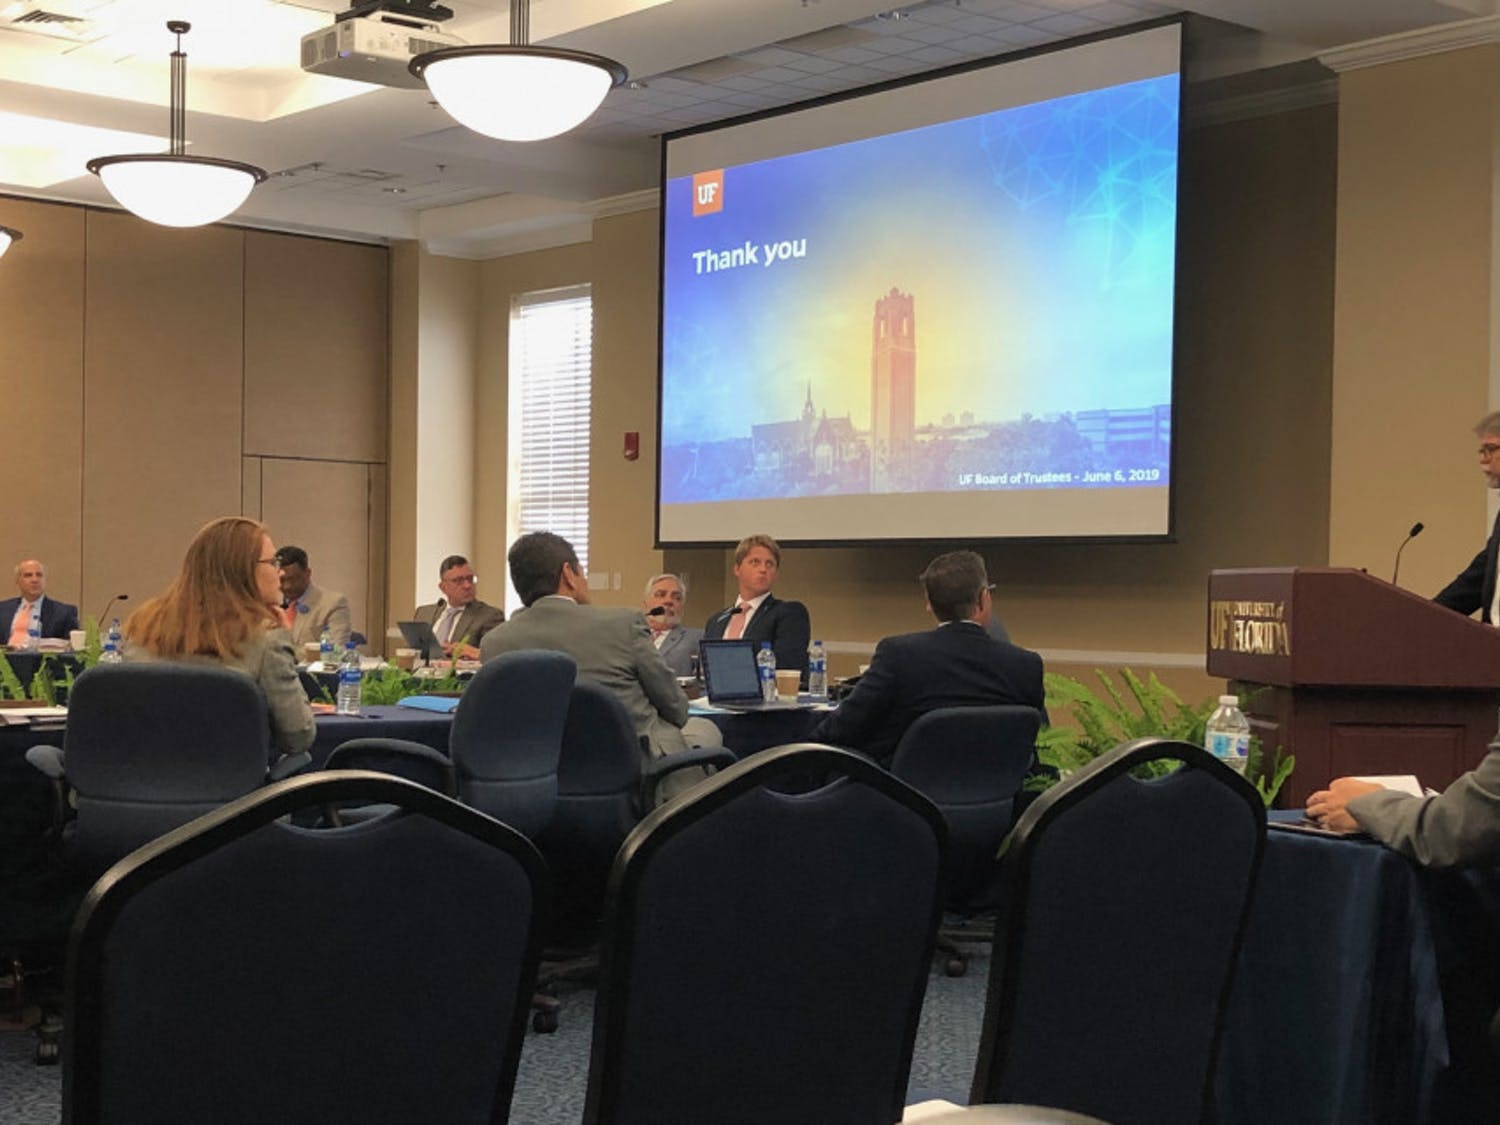 The UF Board of Trustees meeting on June 8, 2019 held in Emerson Alumni Hall.